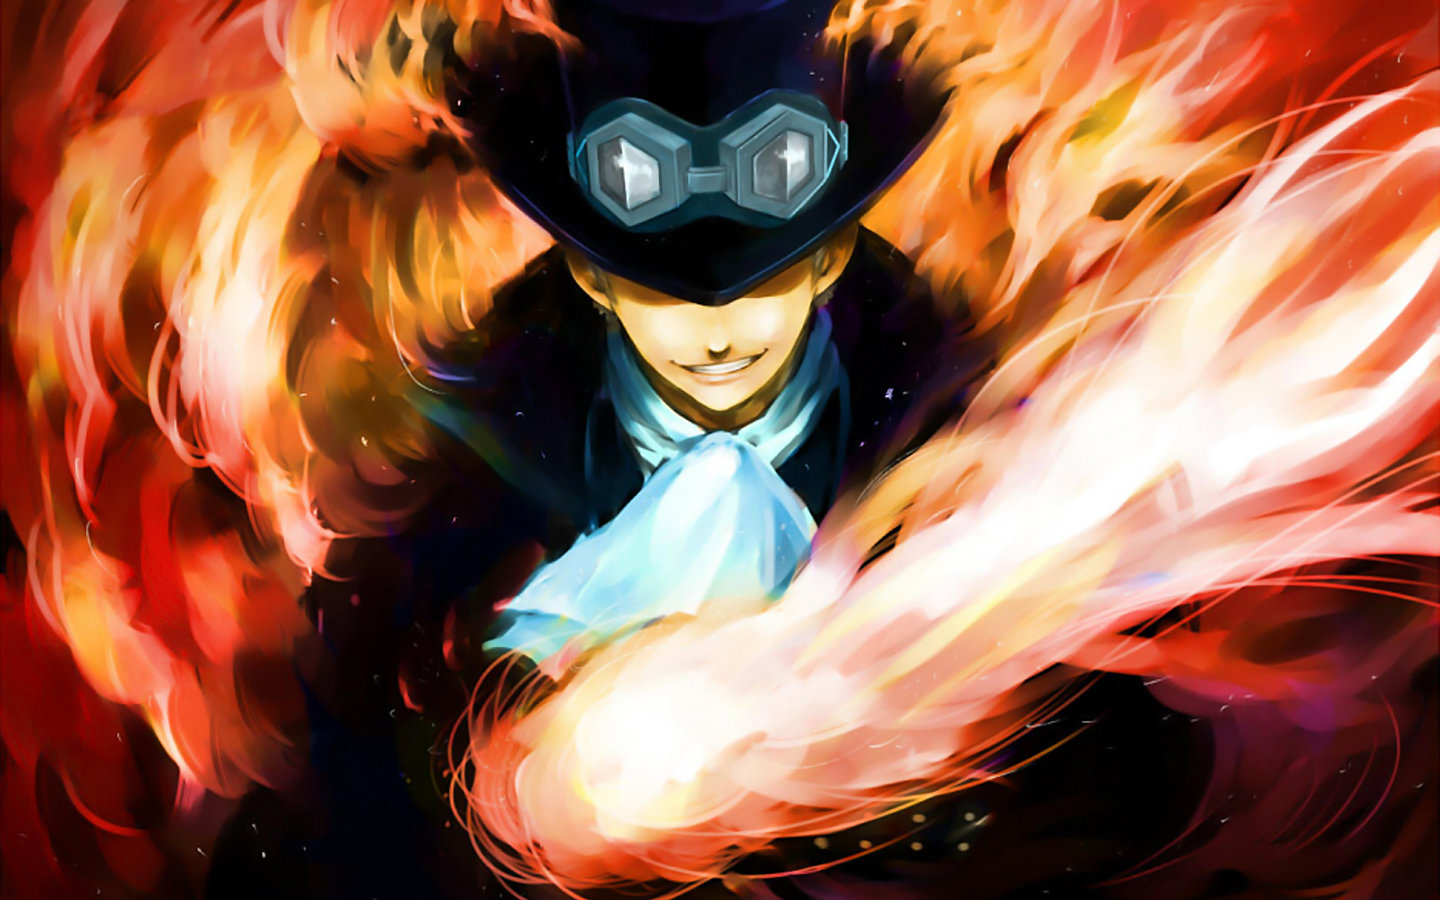 Download hd 1440x900 Sabo (One Piece) desktop background ID:313933 for free